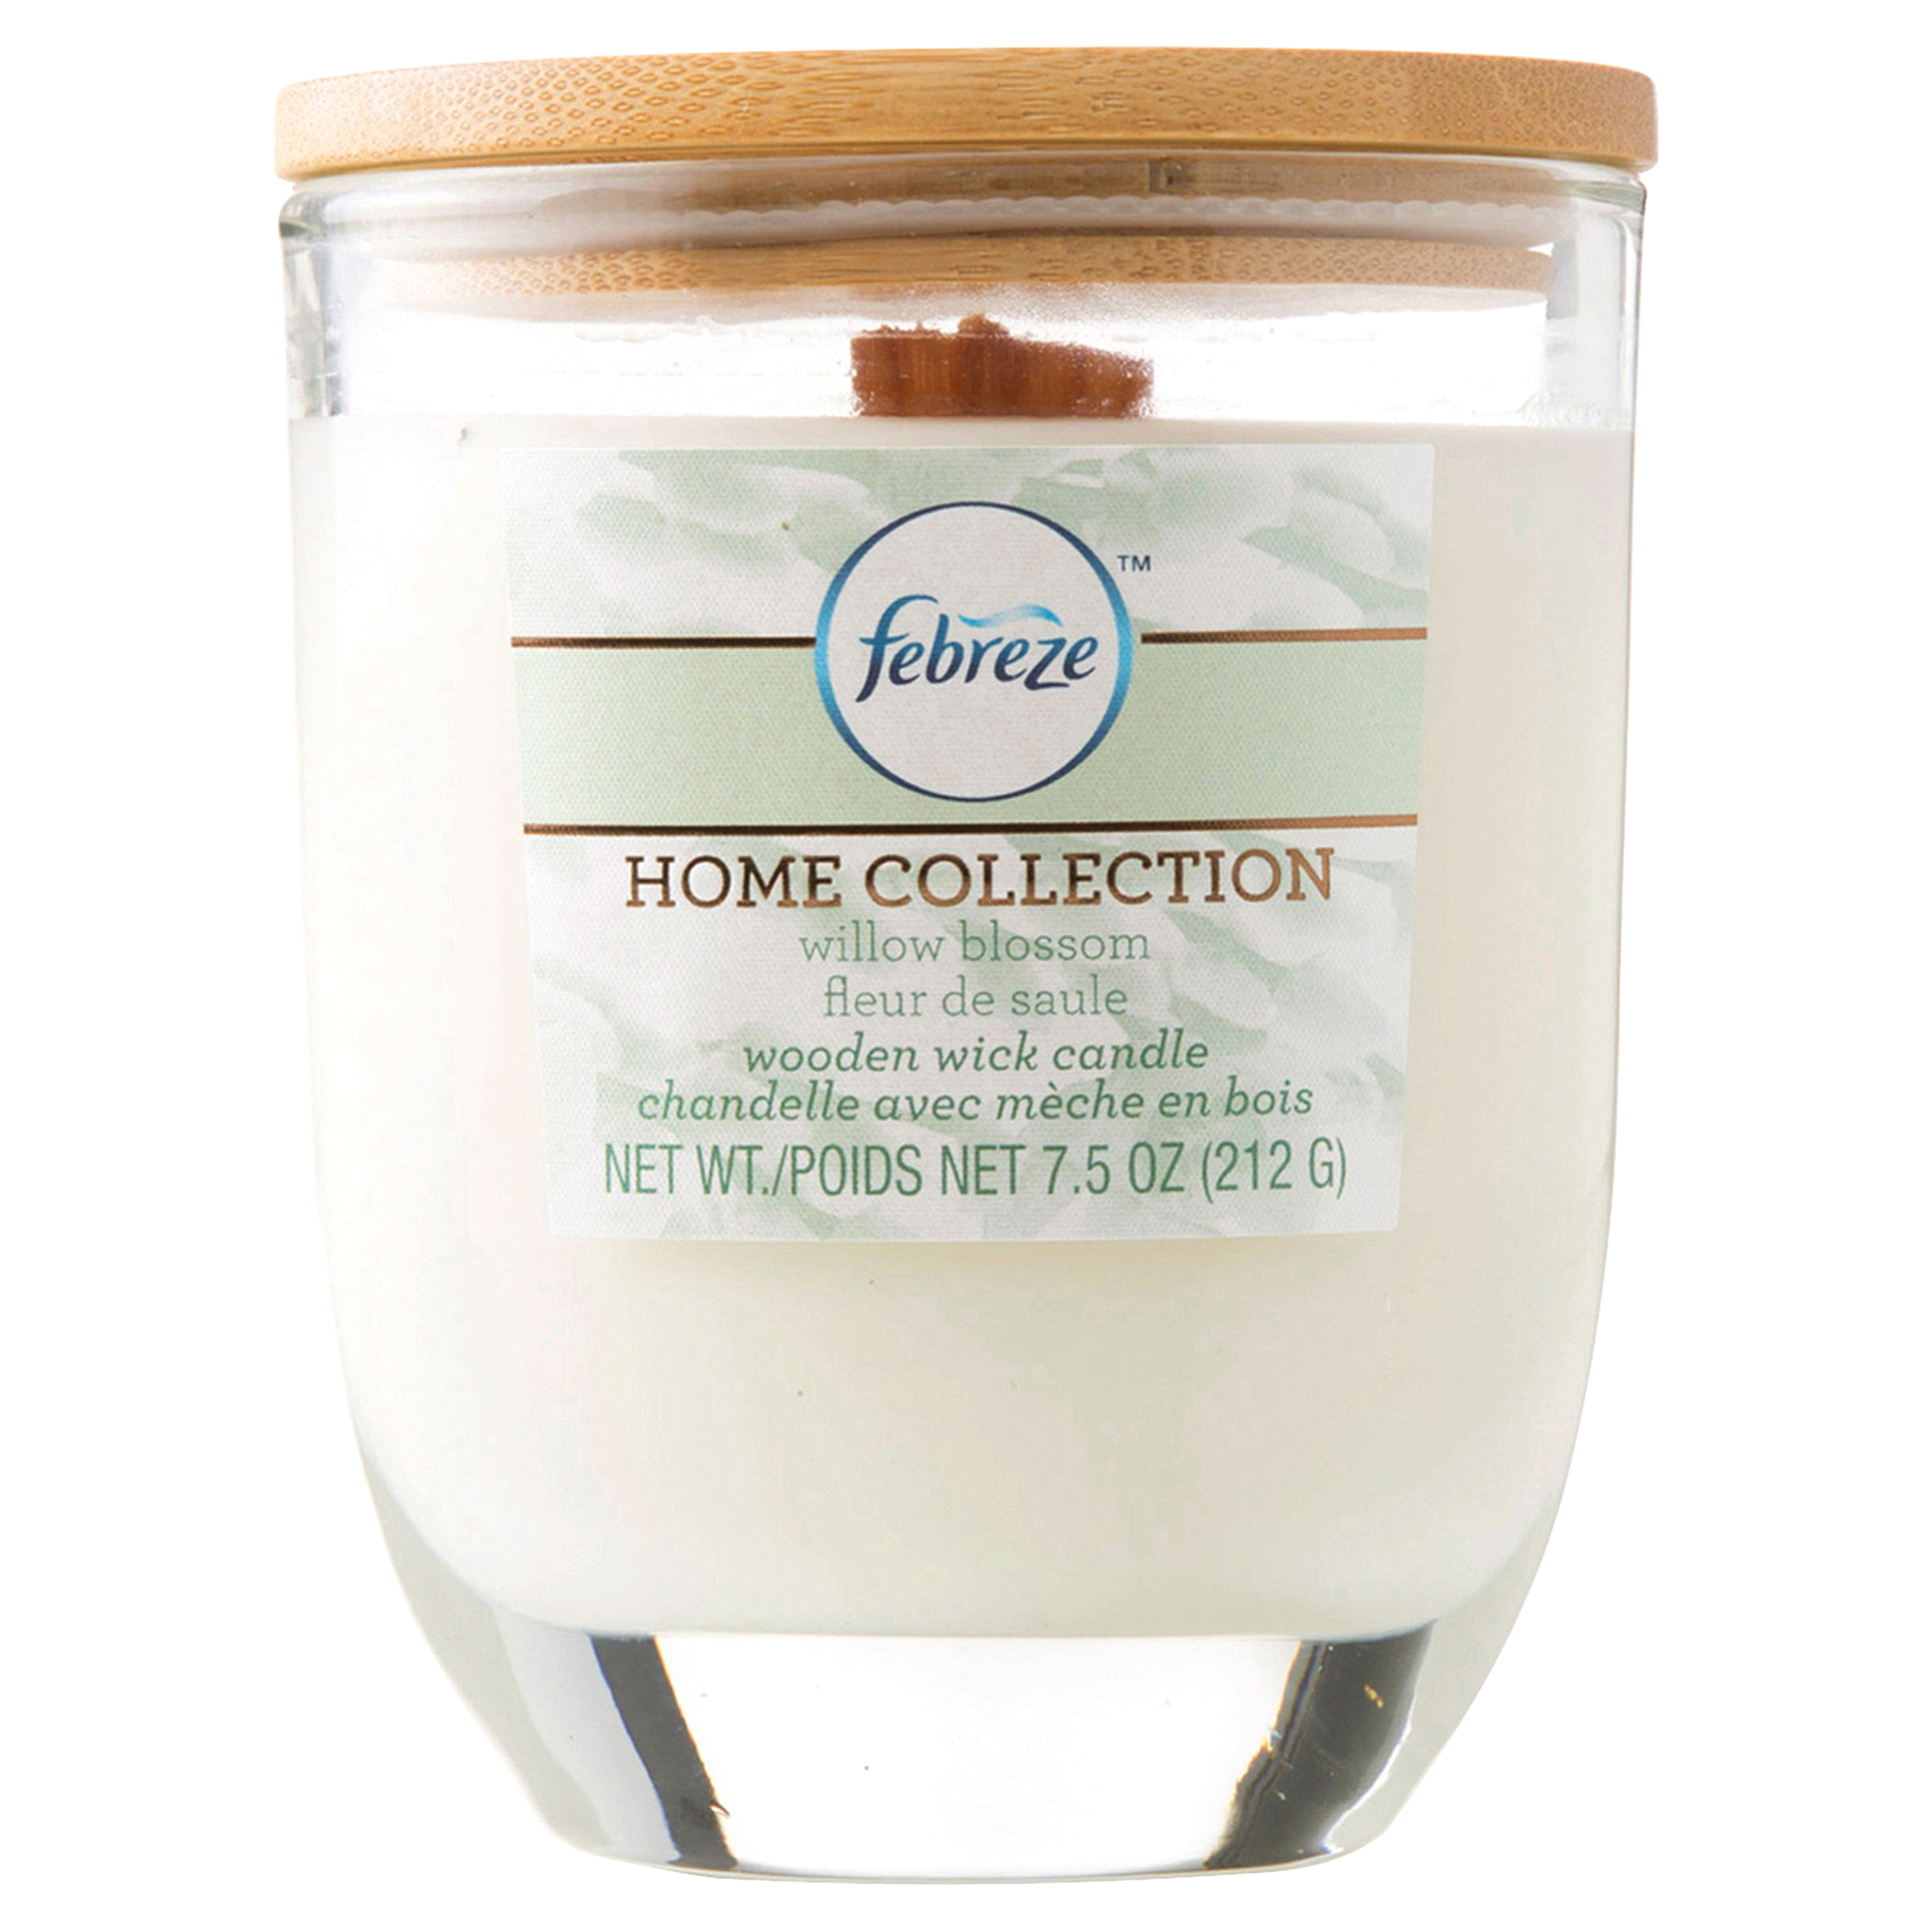 7.5 oz. Febreze Home Collection Wood Wick Willow Blossom Candle ...